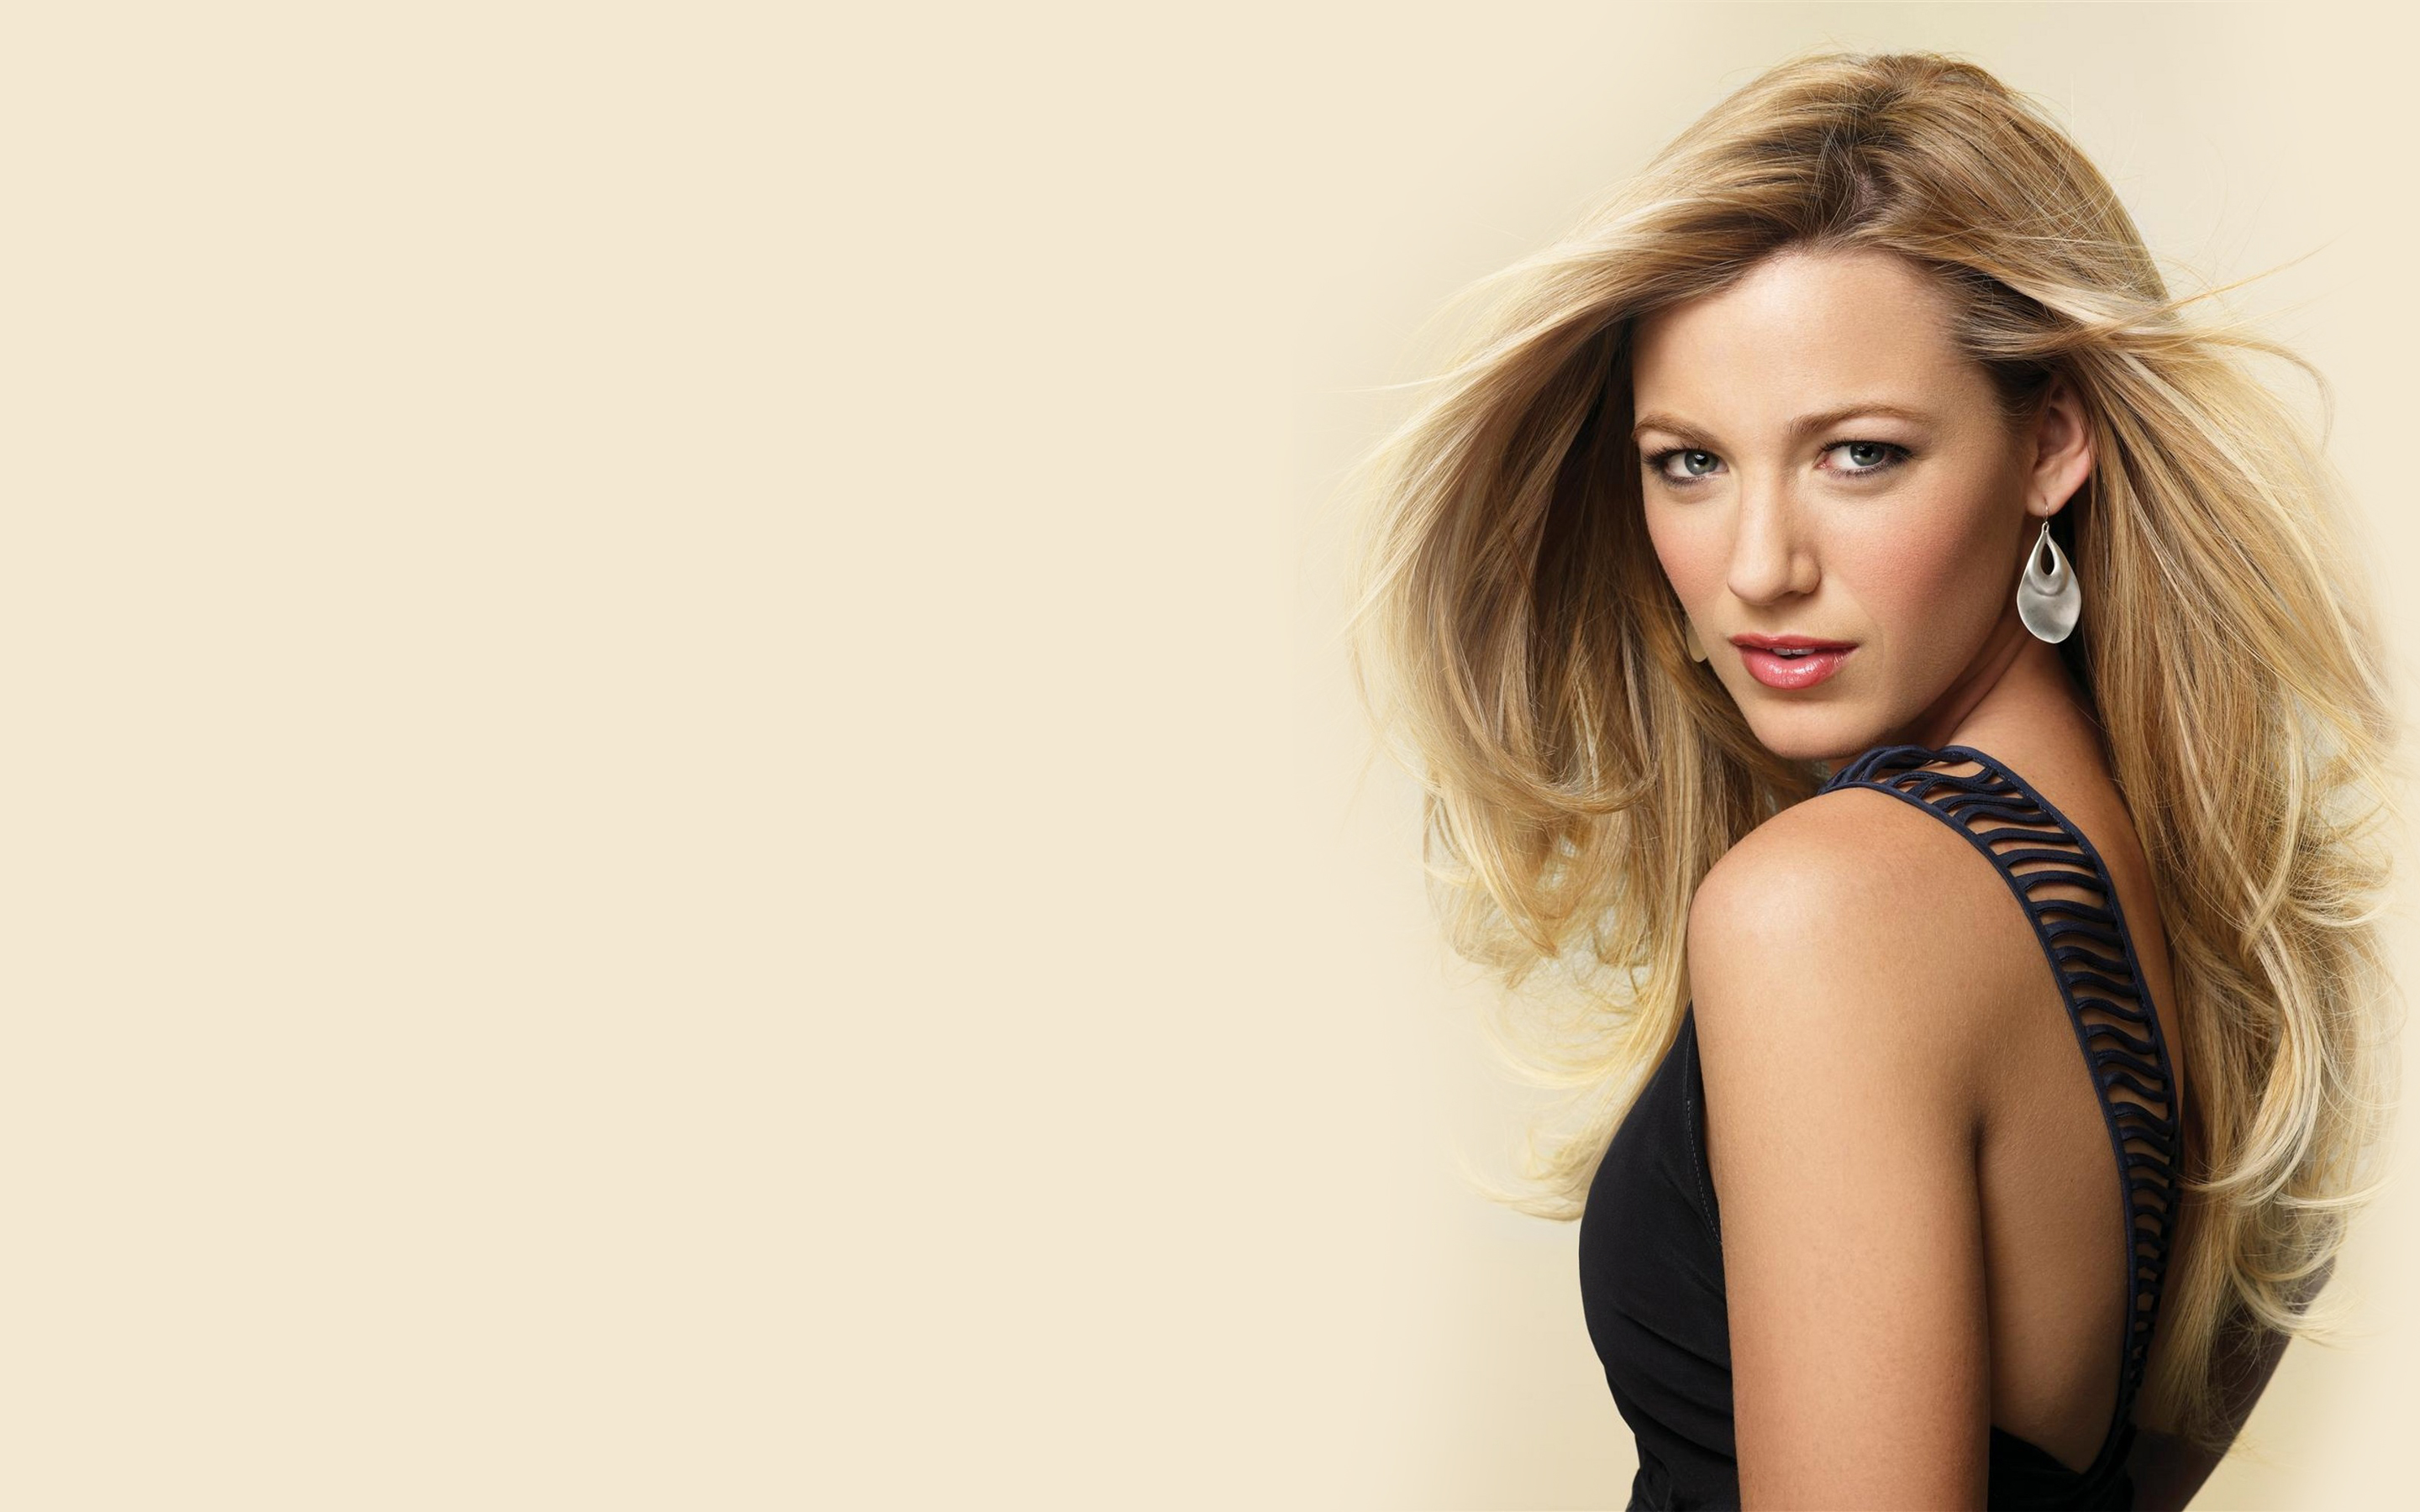 Blake Lively Computer Wallpaper